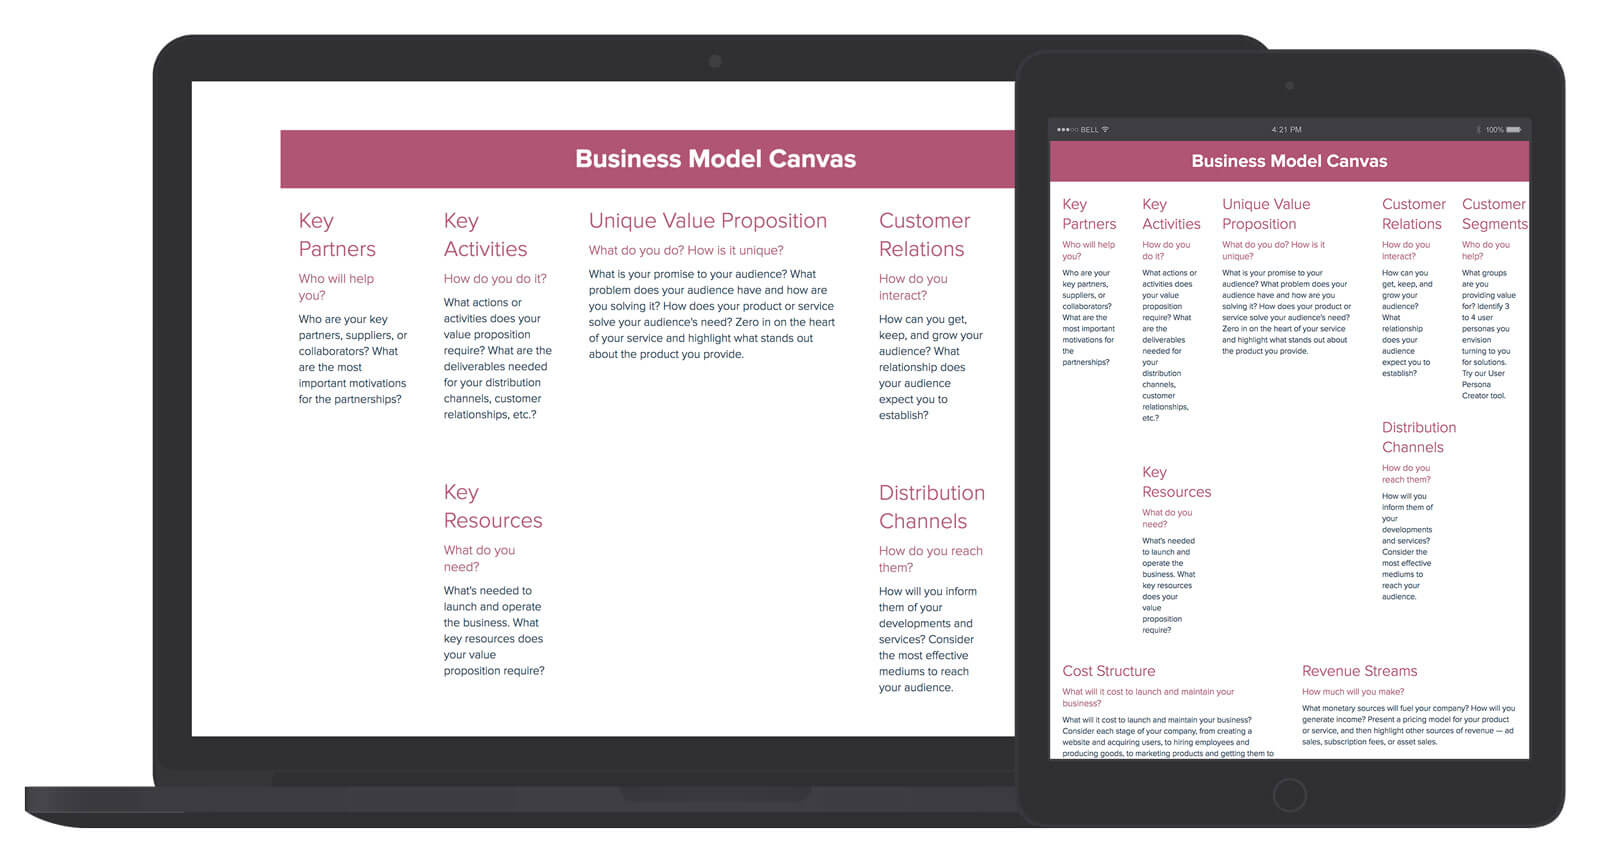 Business model canvas template and examples xtensio pin it on pinterest xtensio small business business model canvas accmission